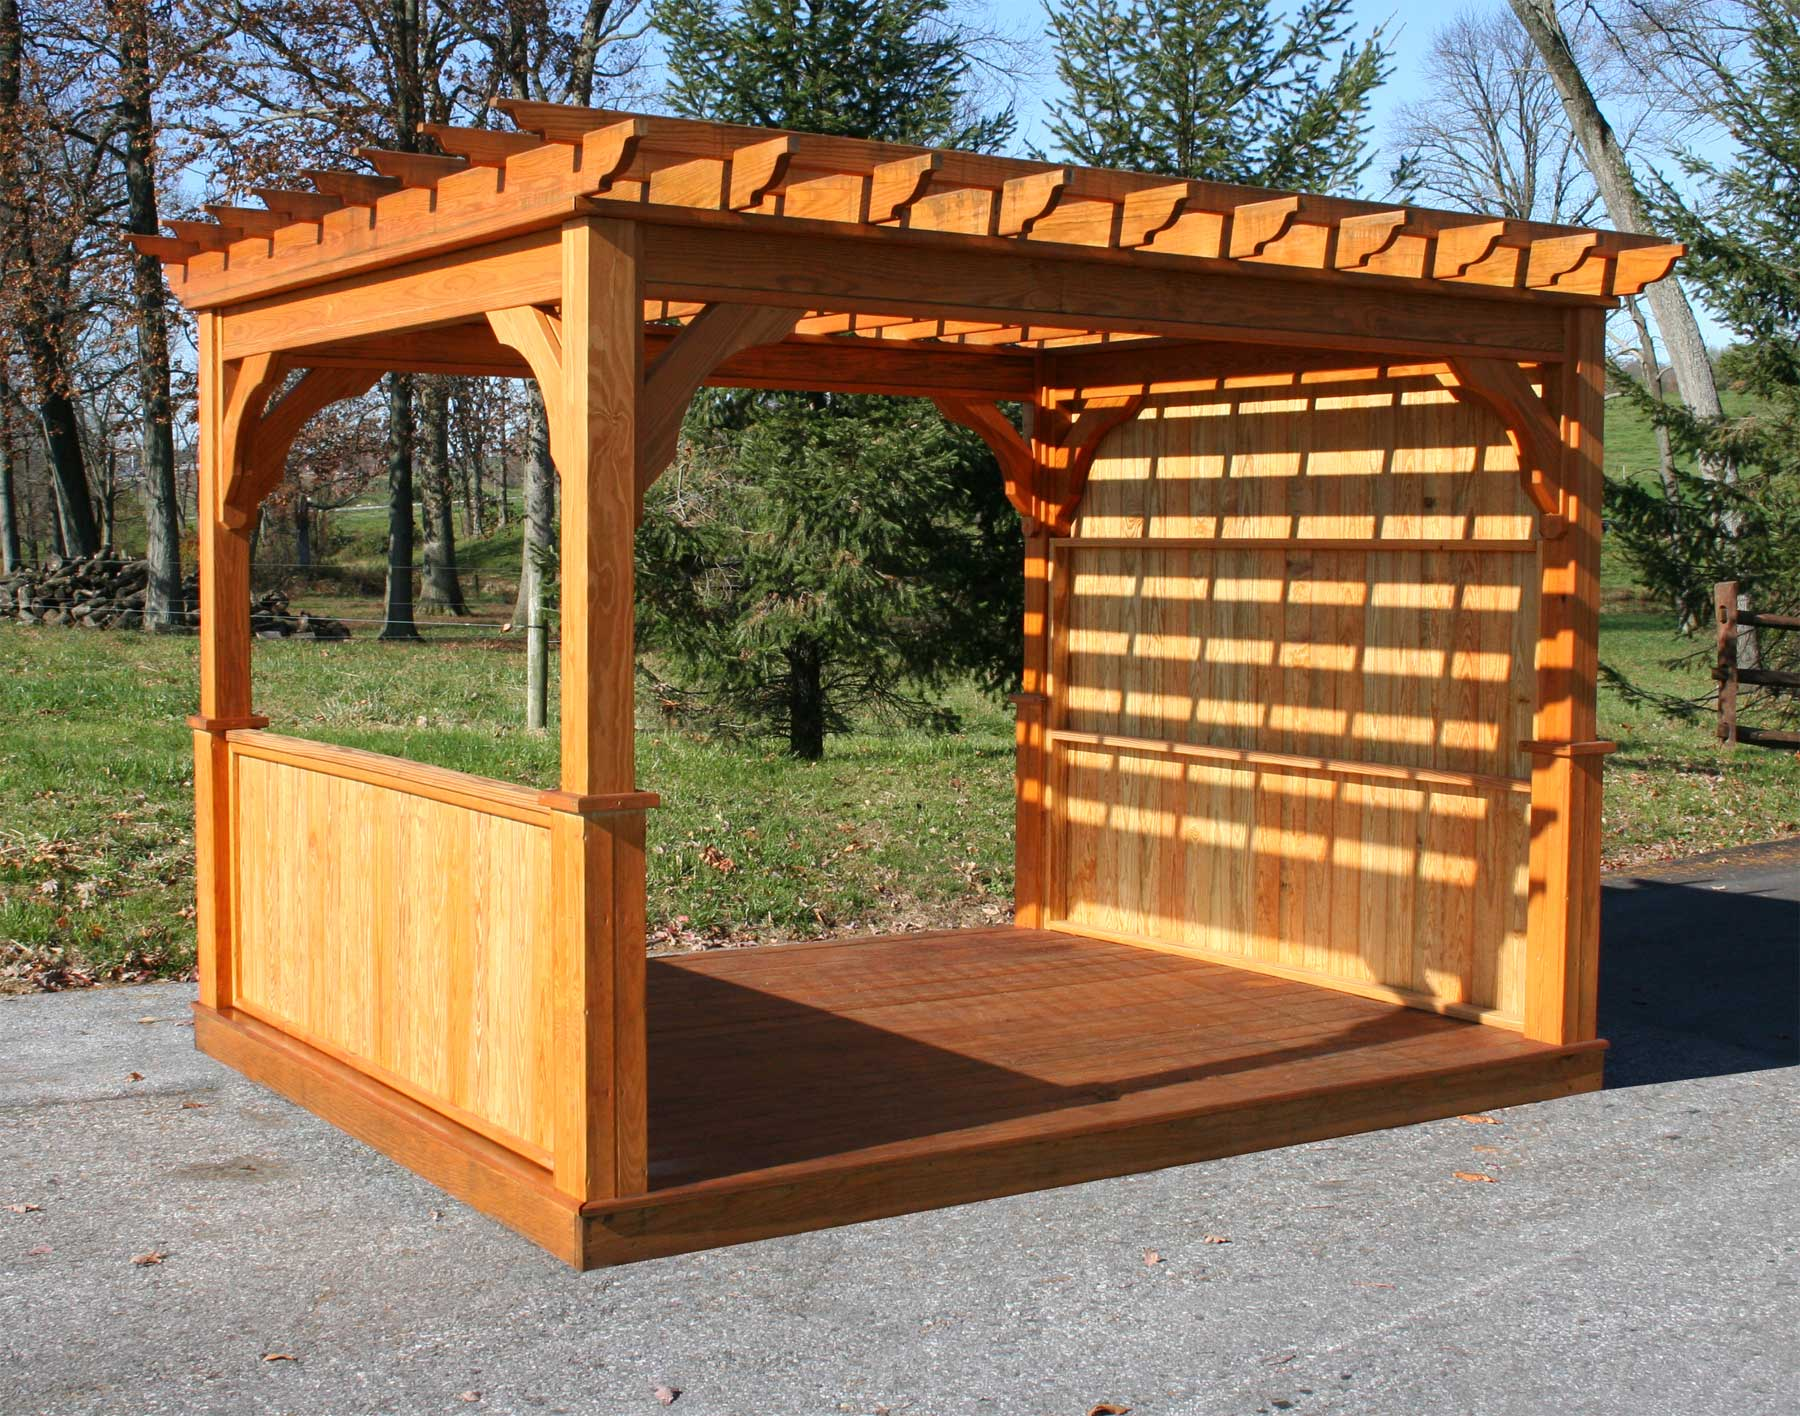 treated pine belvedere free standing pergolas pergolas by style. Black Bedroom Furniture Sets. Home Design Ideas